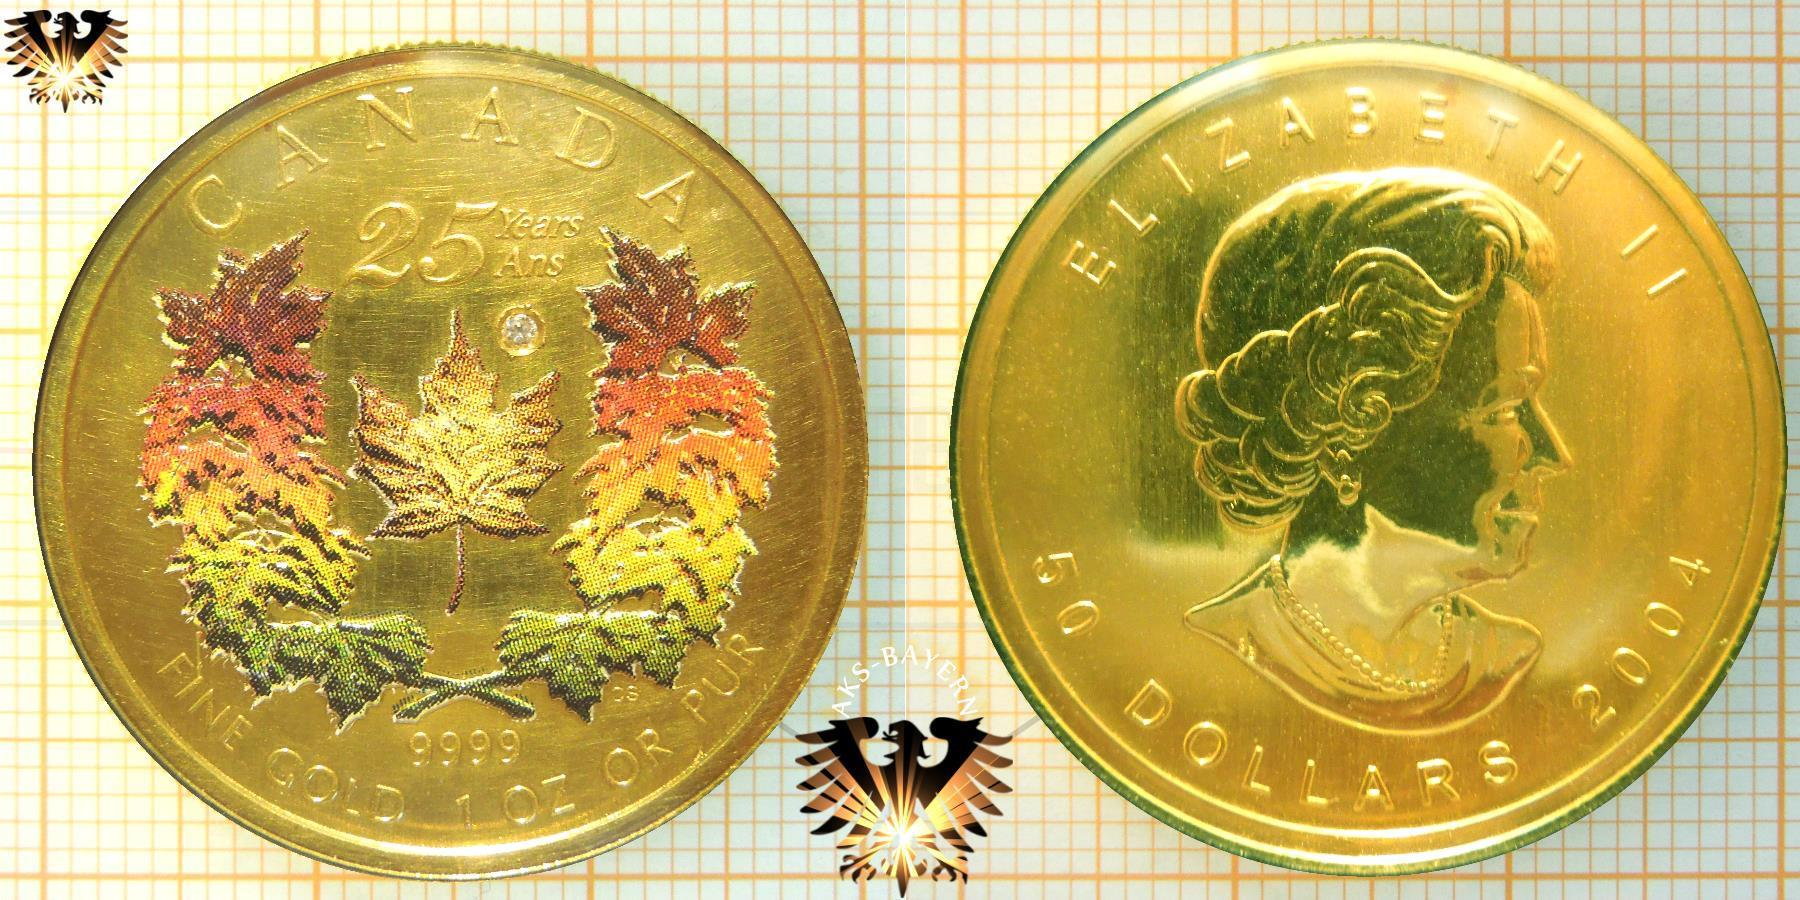 50 Canada Dollar 2004 Maple Leaf Farbmünze 1 Unze Gold Echter